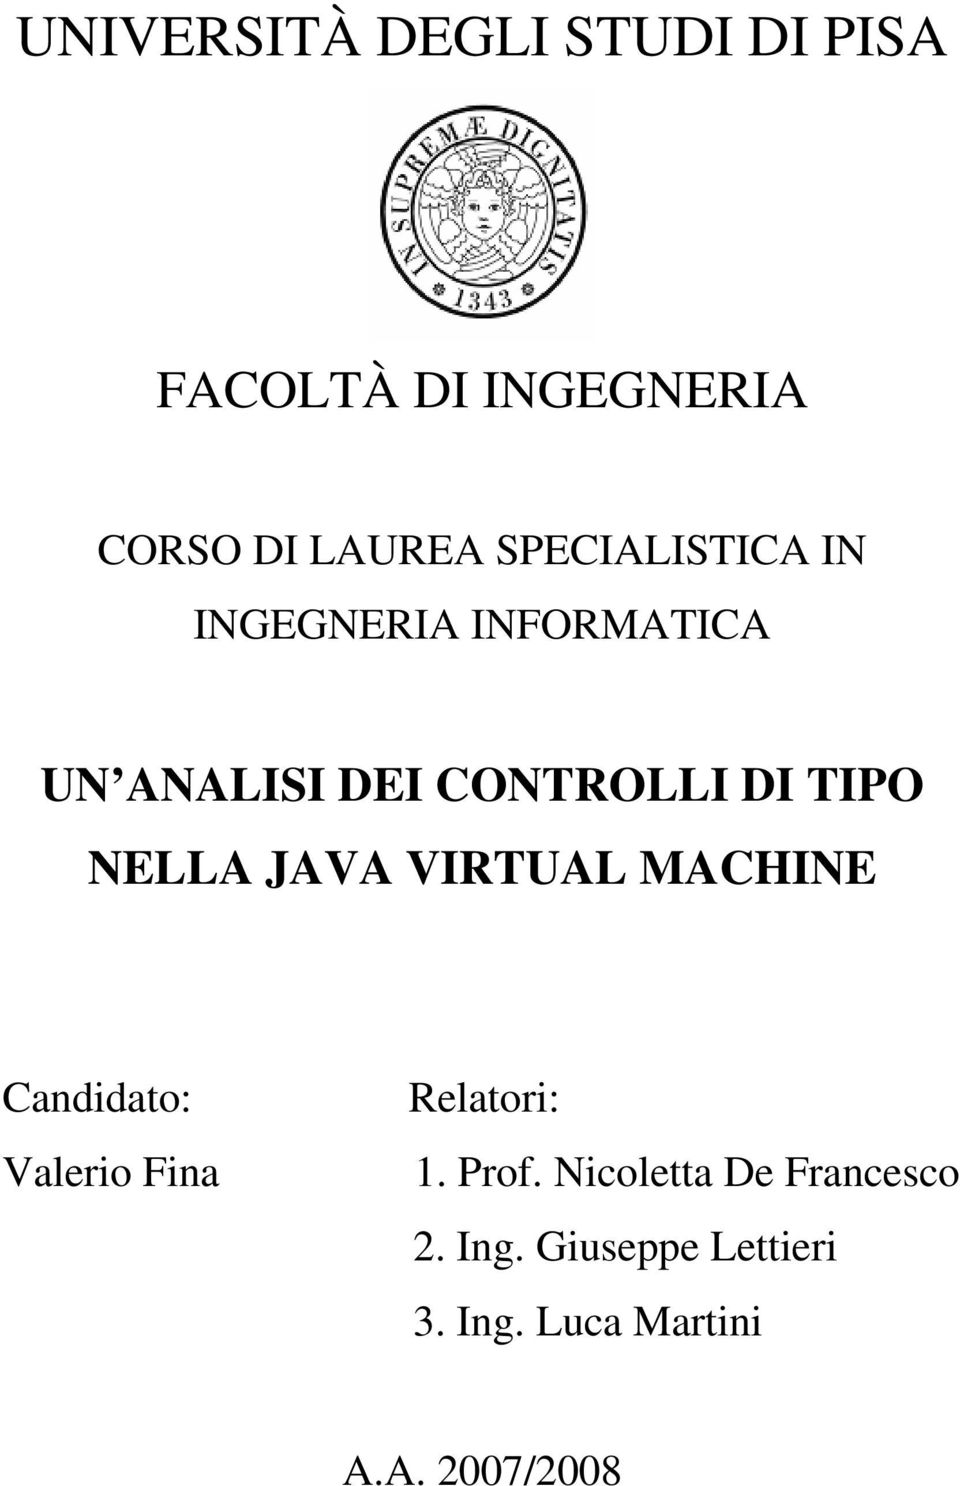 NELLA JAVA VIRTUAL MACHINE Candidato: Valerio Fina Relatori: 1. Prof.